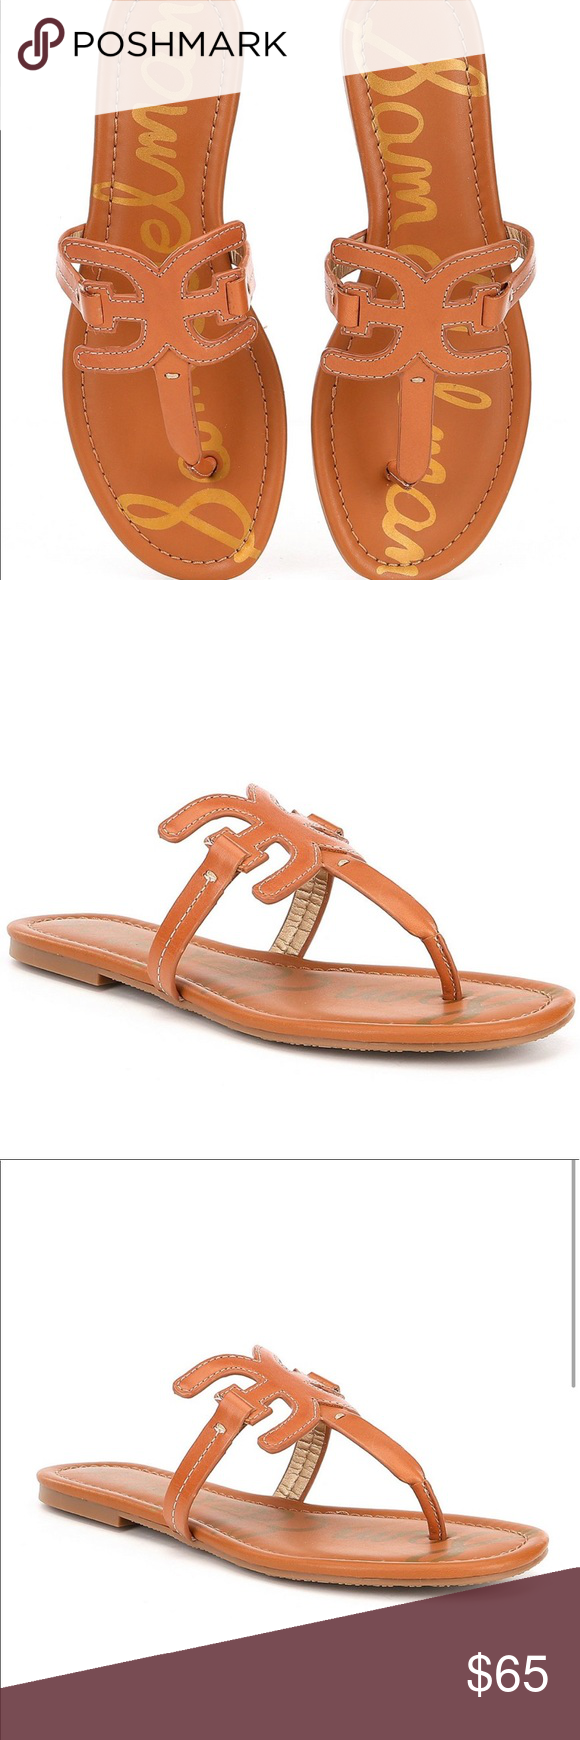 Priced To Sell Today Only Popular Sandals Sam Edelman Shoes Things To Sell